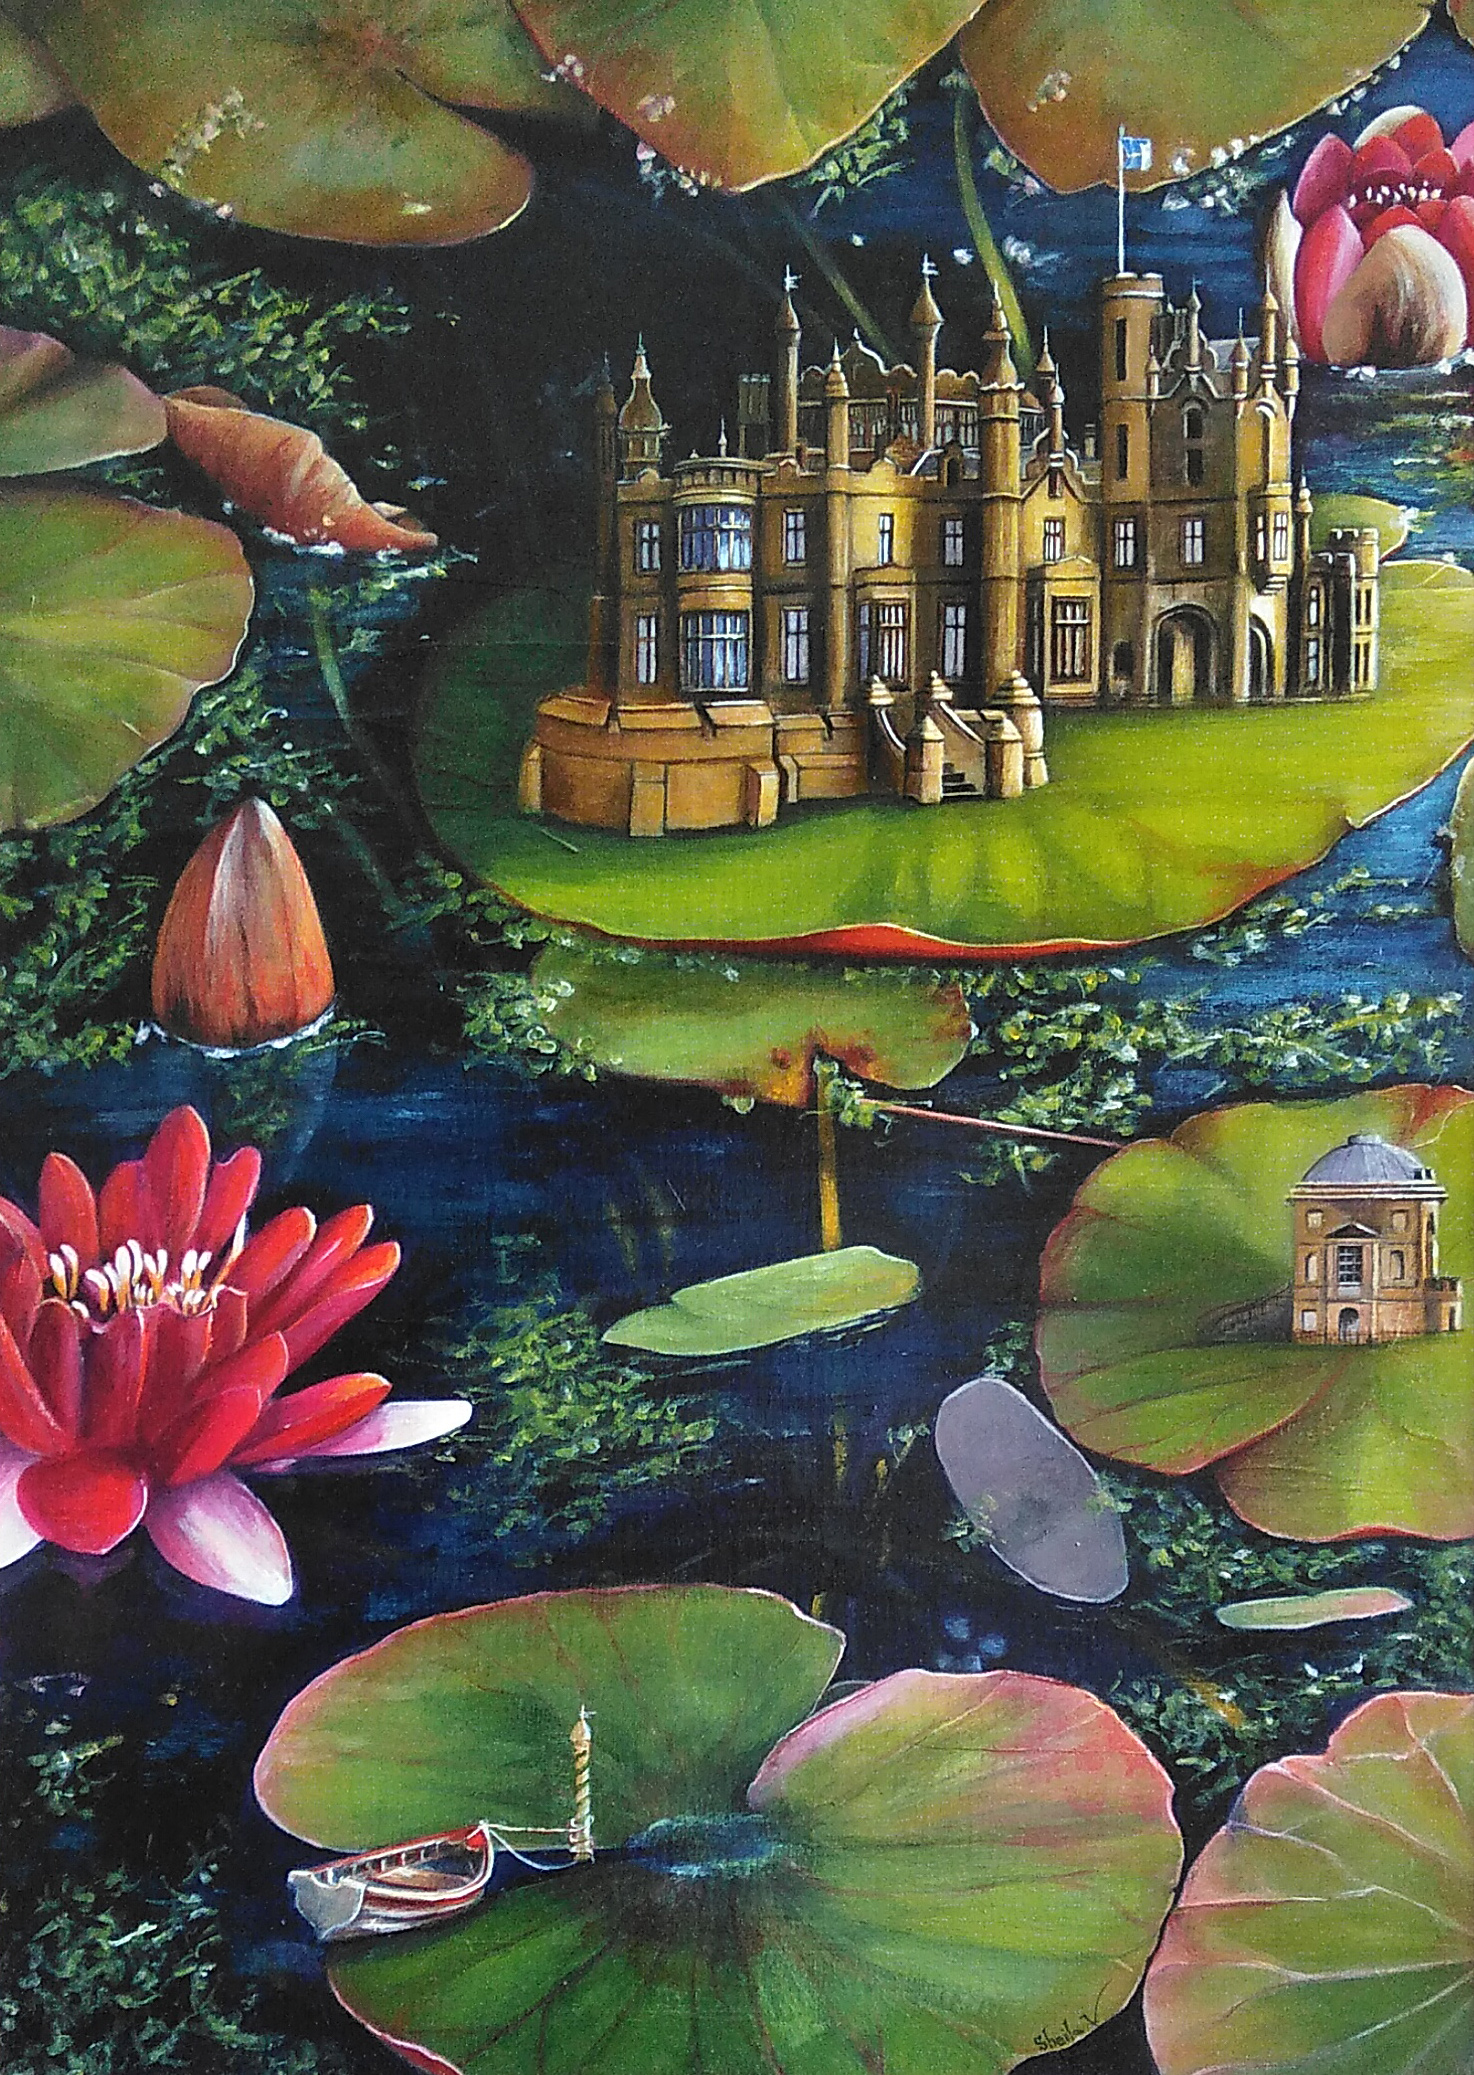 A painting of lily pads on the water. A castle and another building sit on some of the lily pads.